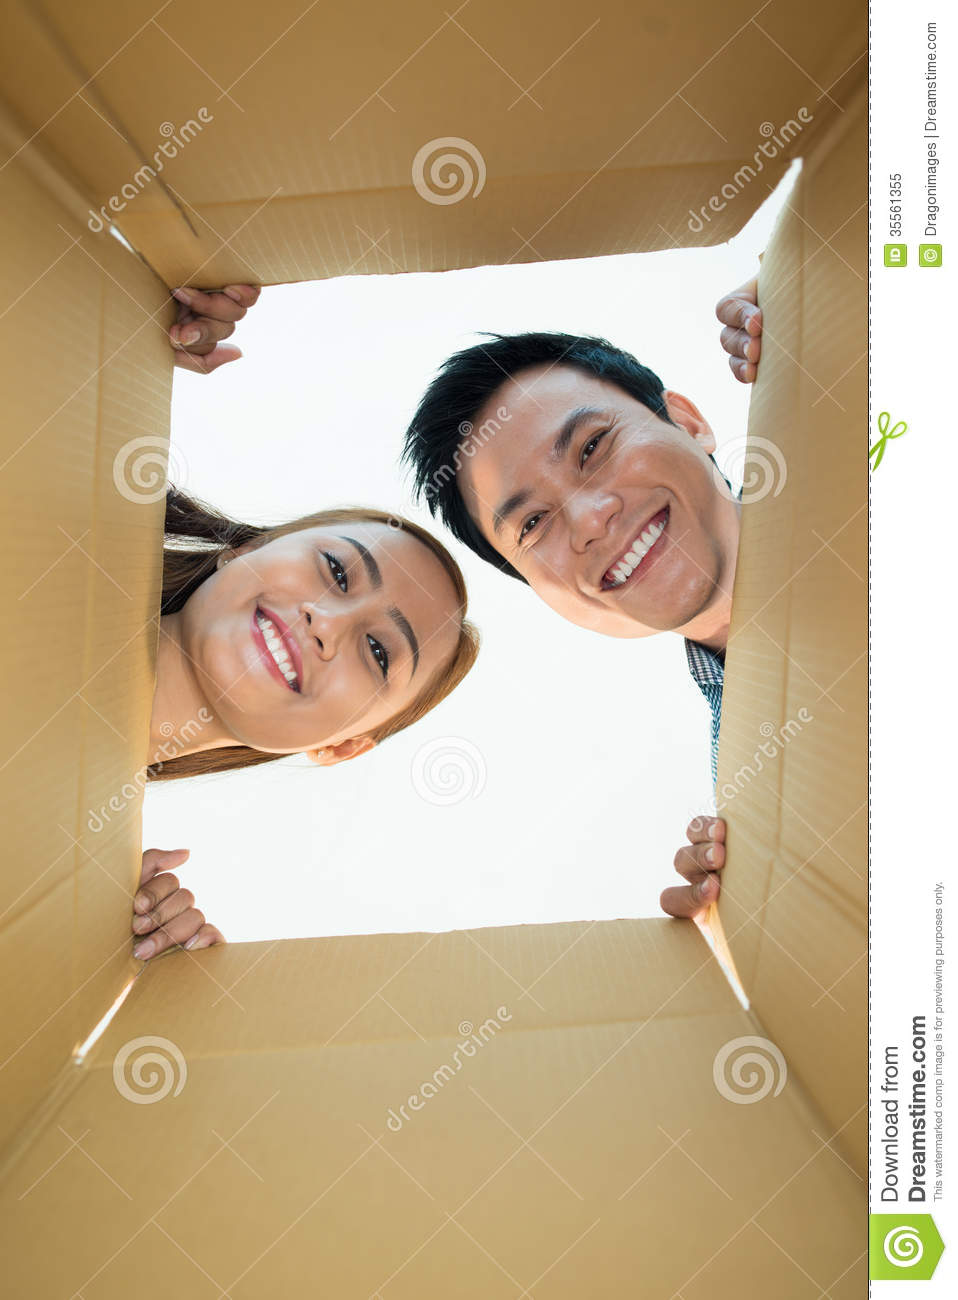 Inside The Box Royalty Free Stock Photo Image 35561355